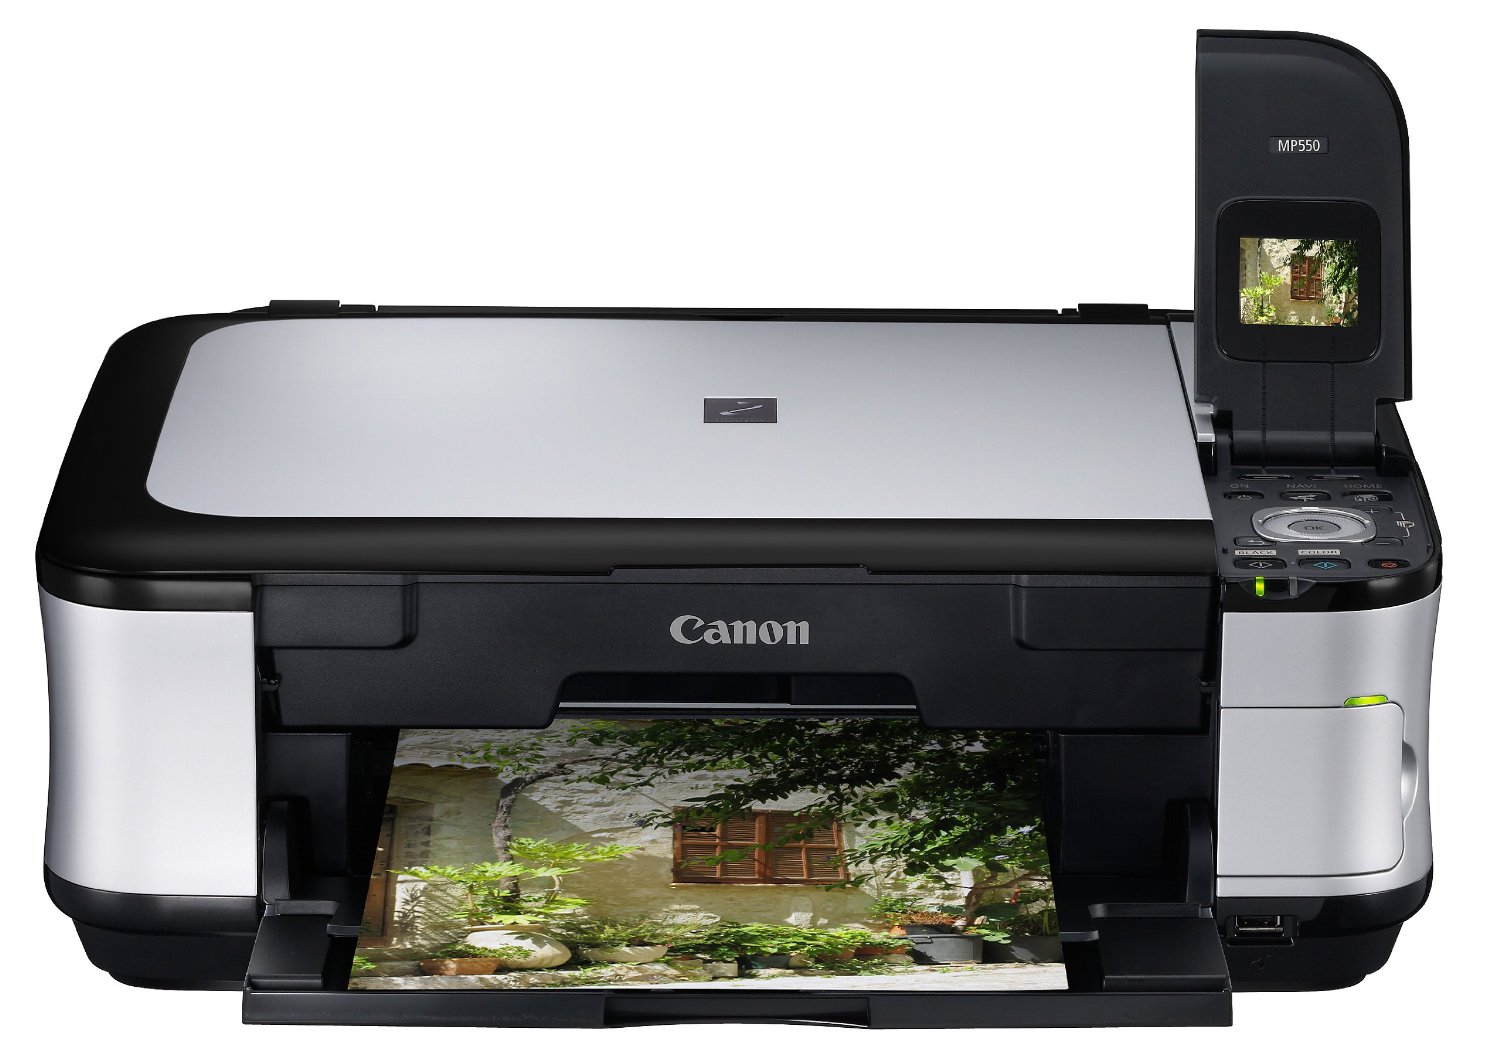 Canon Pixma MP550 Printer Driver Download - Driver Storage - photo#49